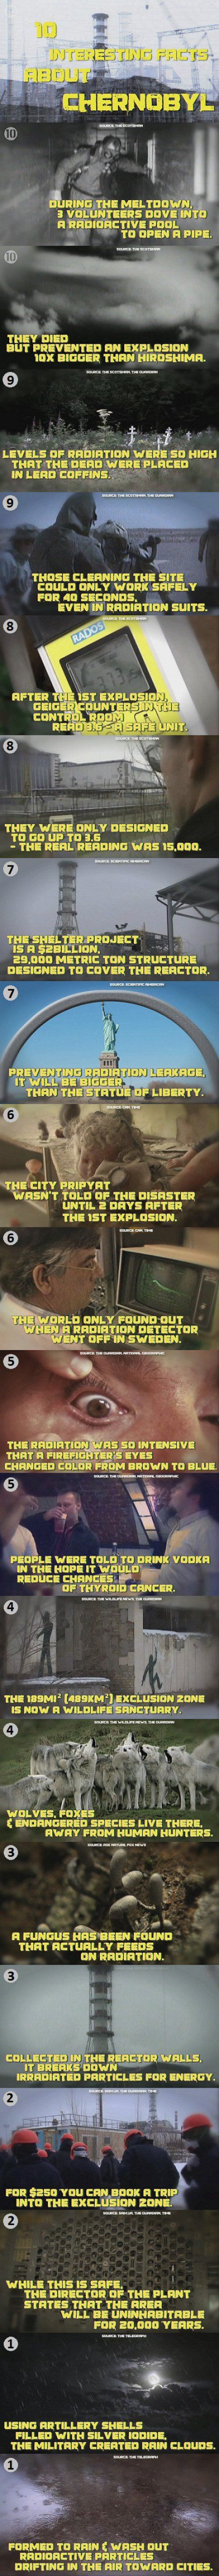 Chernobyl Facts - Wow.  Three people volunteered to jump in to prevent an even greater disaster.  Why are we only finding this out now?  They are true heros!